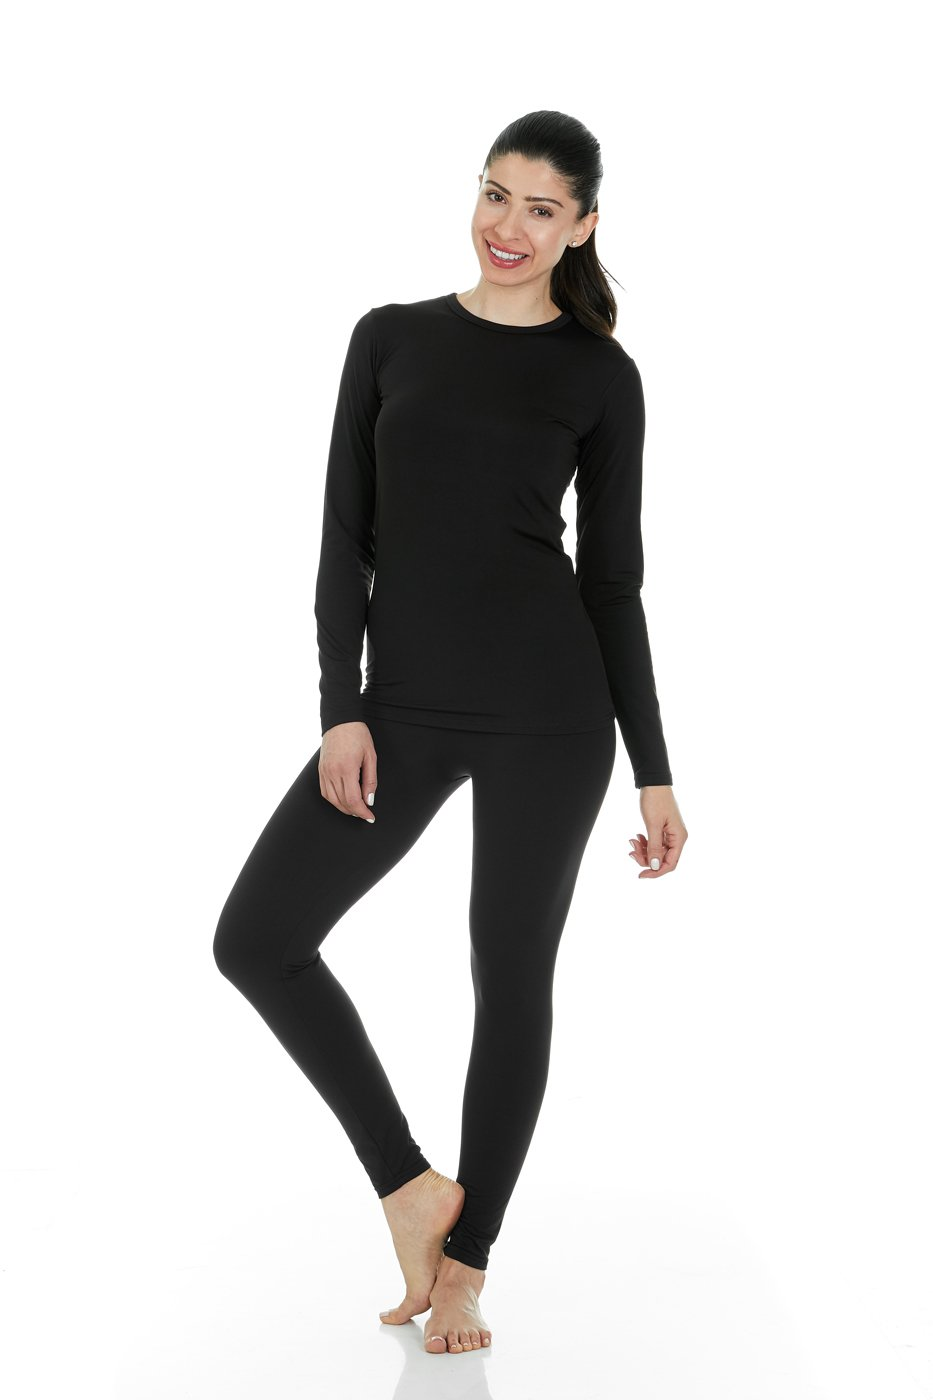 Thermajane Women's Ultra Soft Thermal Underwear Long Johns Set with Fleece Lined (3X-Large, Black) by Thermajane